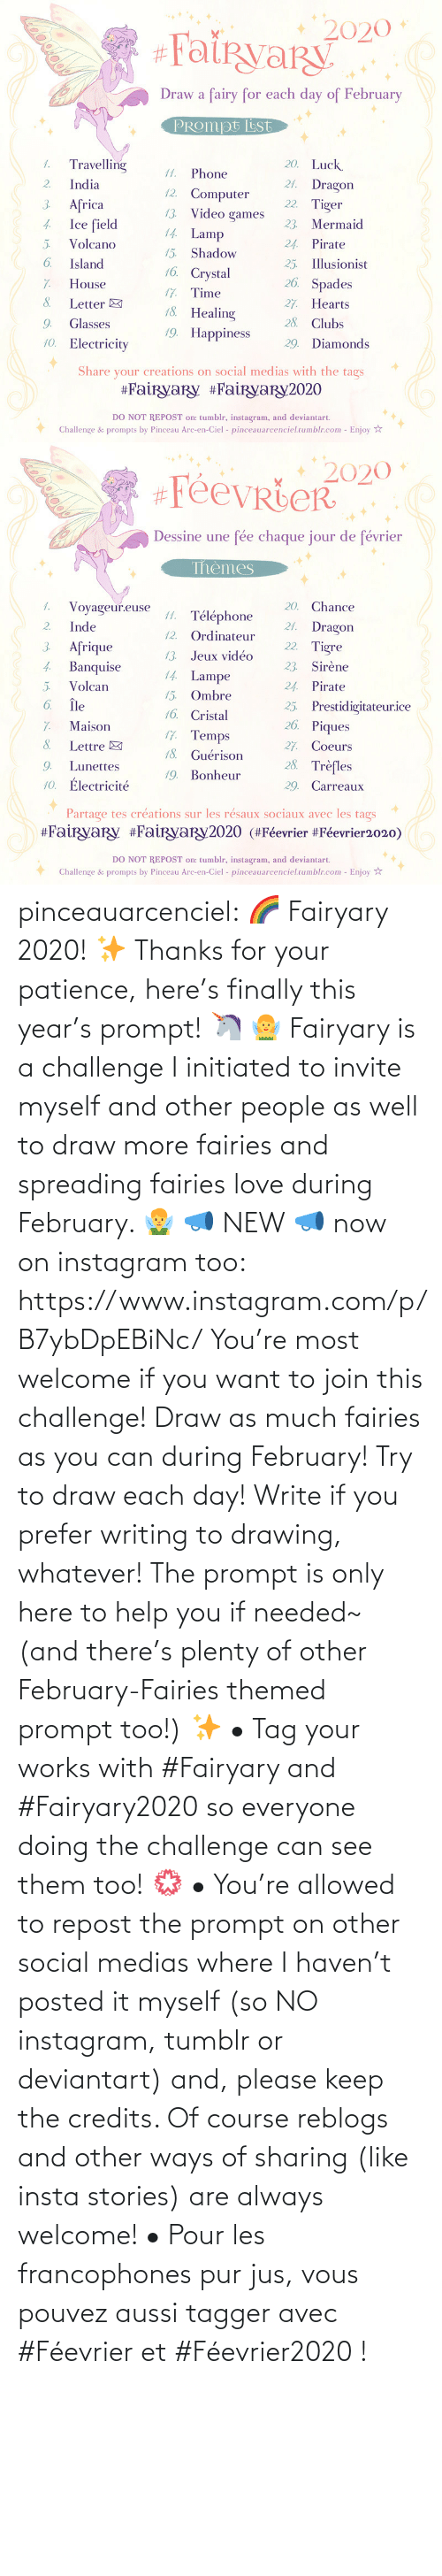 spreading: pinceauarcenciel: 🌈 Fairyary 2020! ✨ Thanks for your patience, here's finally this year's prompt! 🦄 🧚‍♀️ Fairyary is a challenge I initiated to invite myself and other people as well to draw more fairies and spreading fairies love during February. 🧚‍♂️ 📣 NEW 📣 now on instagram too: https://www.instagram.com/p/B7ybDpEBiNc/ You're most welcome if you want to join this challenge! Draw as much fairies as you can during February! Try to draw each day! Write if you prefer writing to drawing, whatever! The prompt is only here to help you if needed~ (and there's plenty of other February-Fairies themed prompt too!) ✨ • Tag your works with #Fairyary and #Fairyary2020 so everyone doing the challenge can see them too! 💮 • You're allowed to repost the prompt on other social medias where I haven't posted it myself (so NO instagram, tumblr or deviantart) and, please keep the credits. Of course reblogs and other ways of sharing (like insta stories) are always welcome!